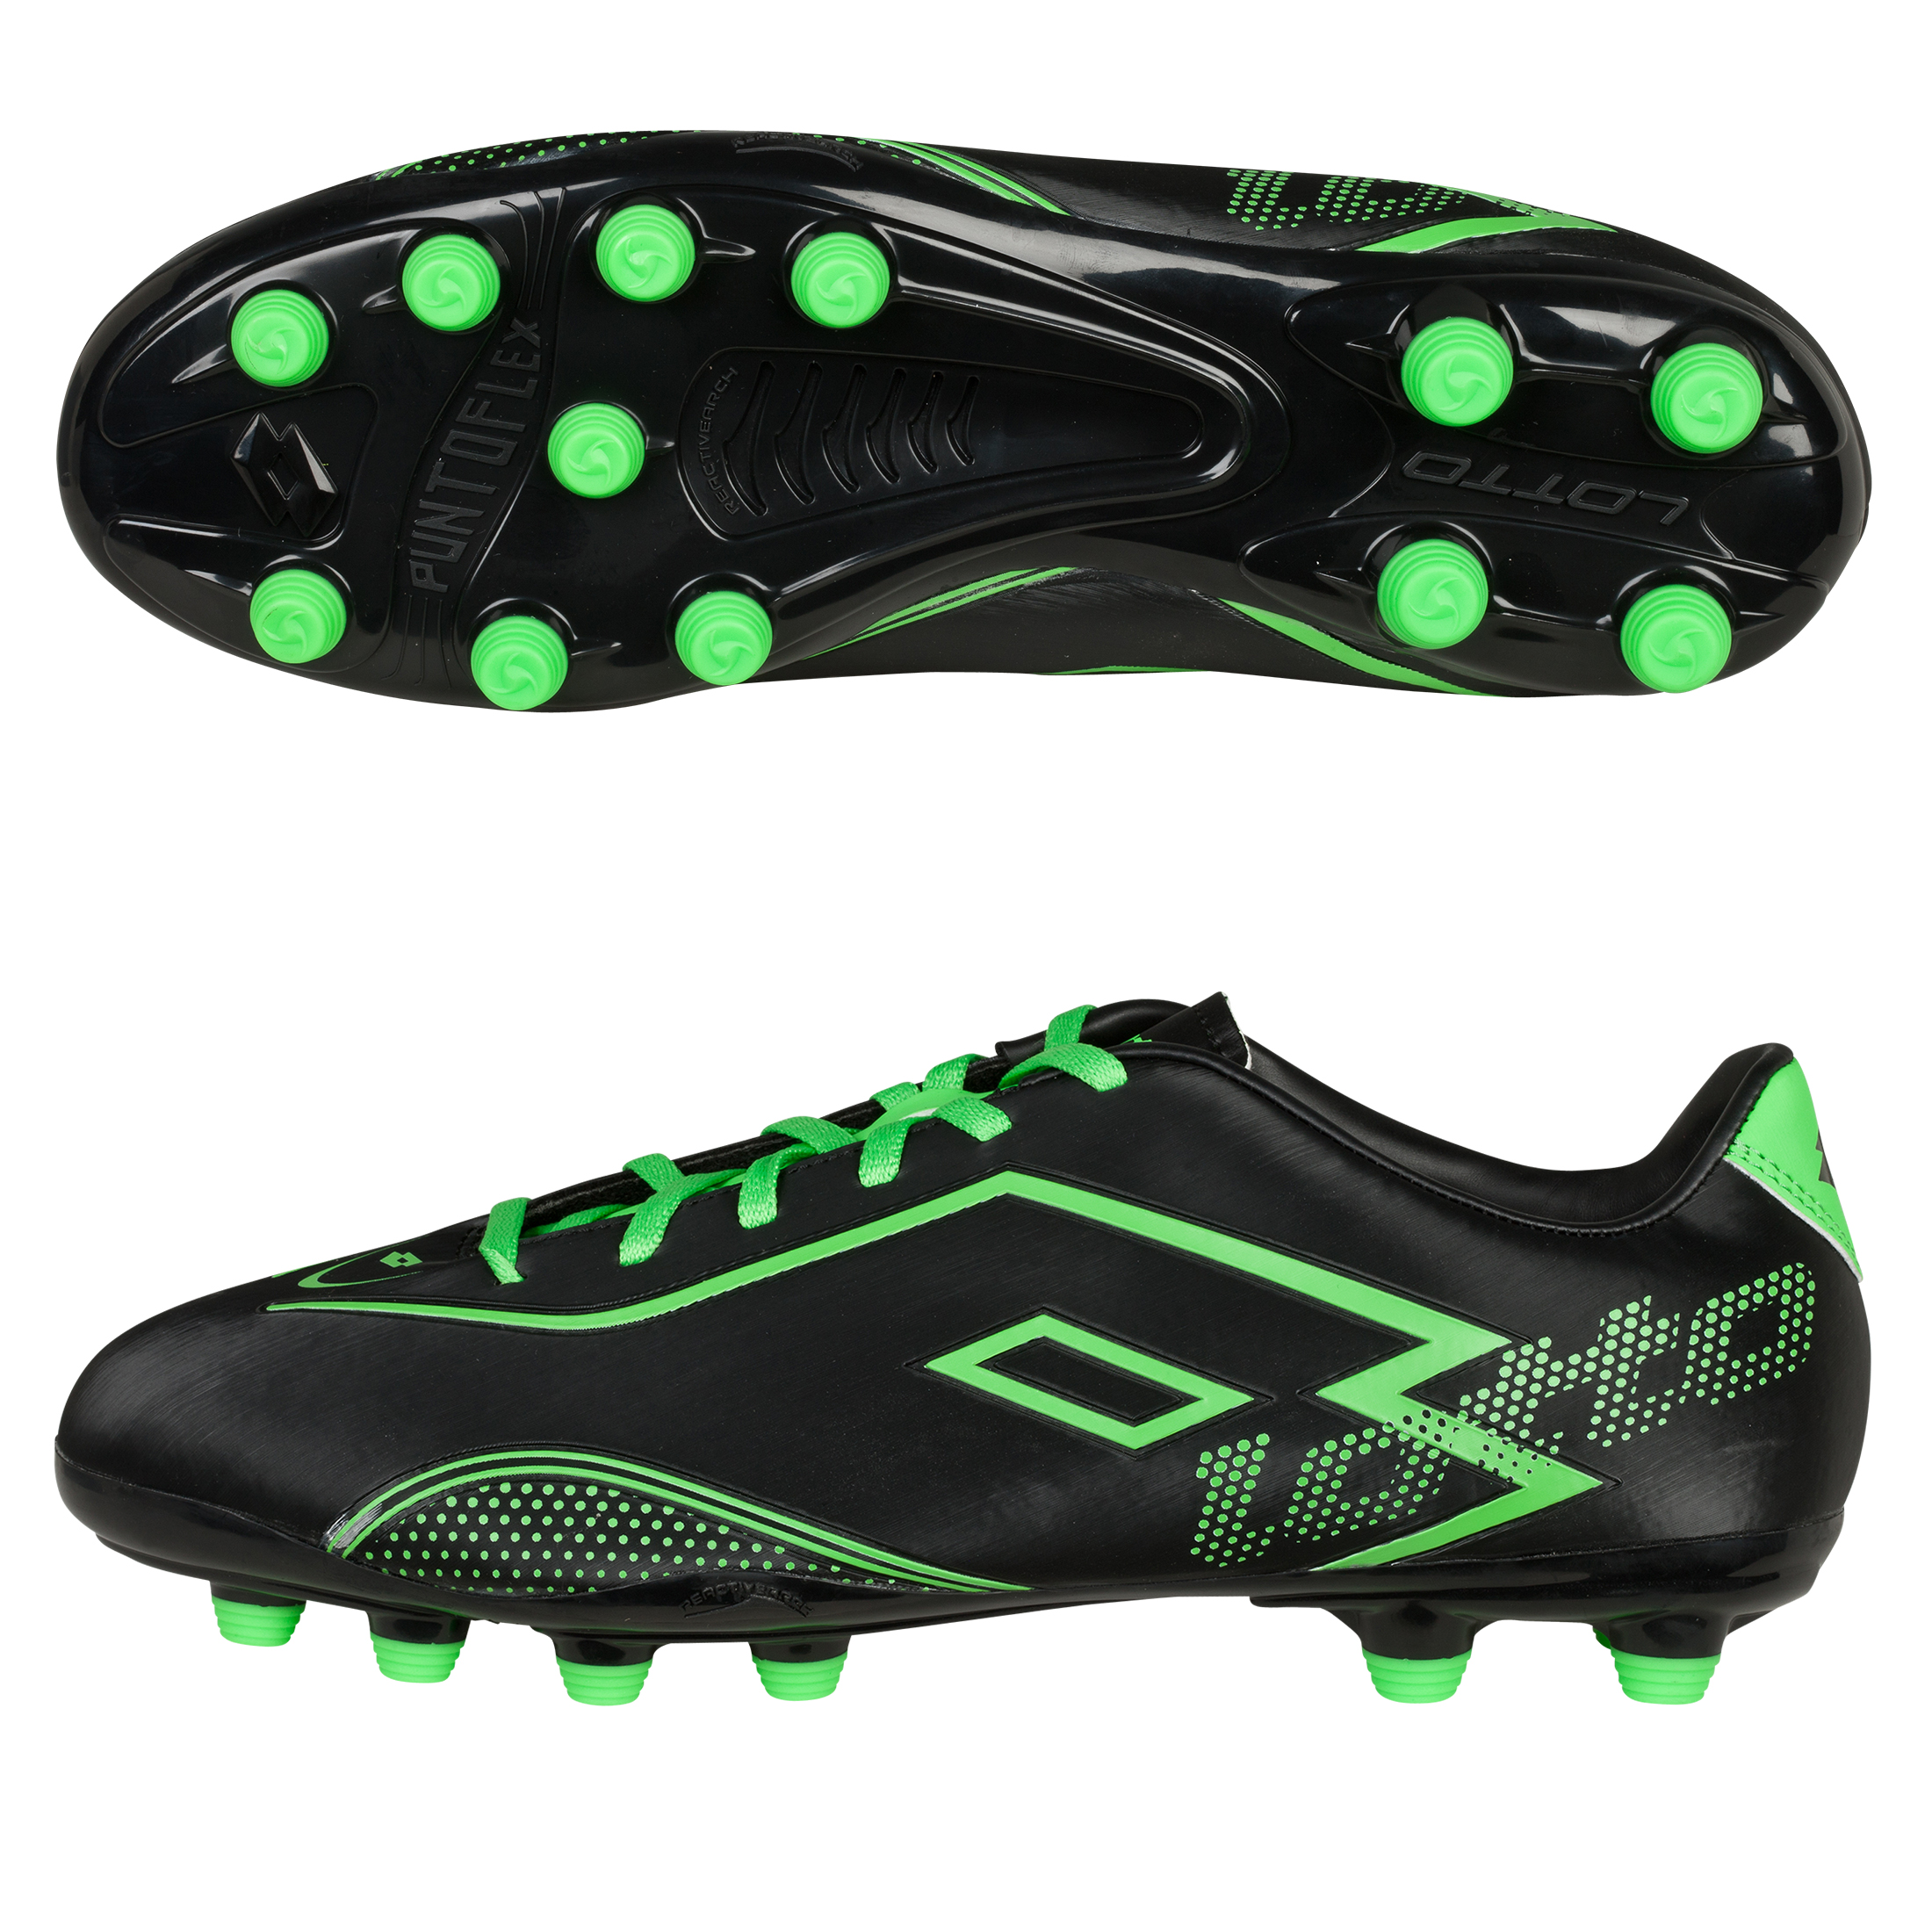 Lotto Zhero Gravity.II 700 FG Black/MN Green